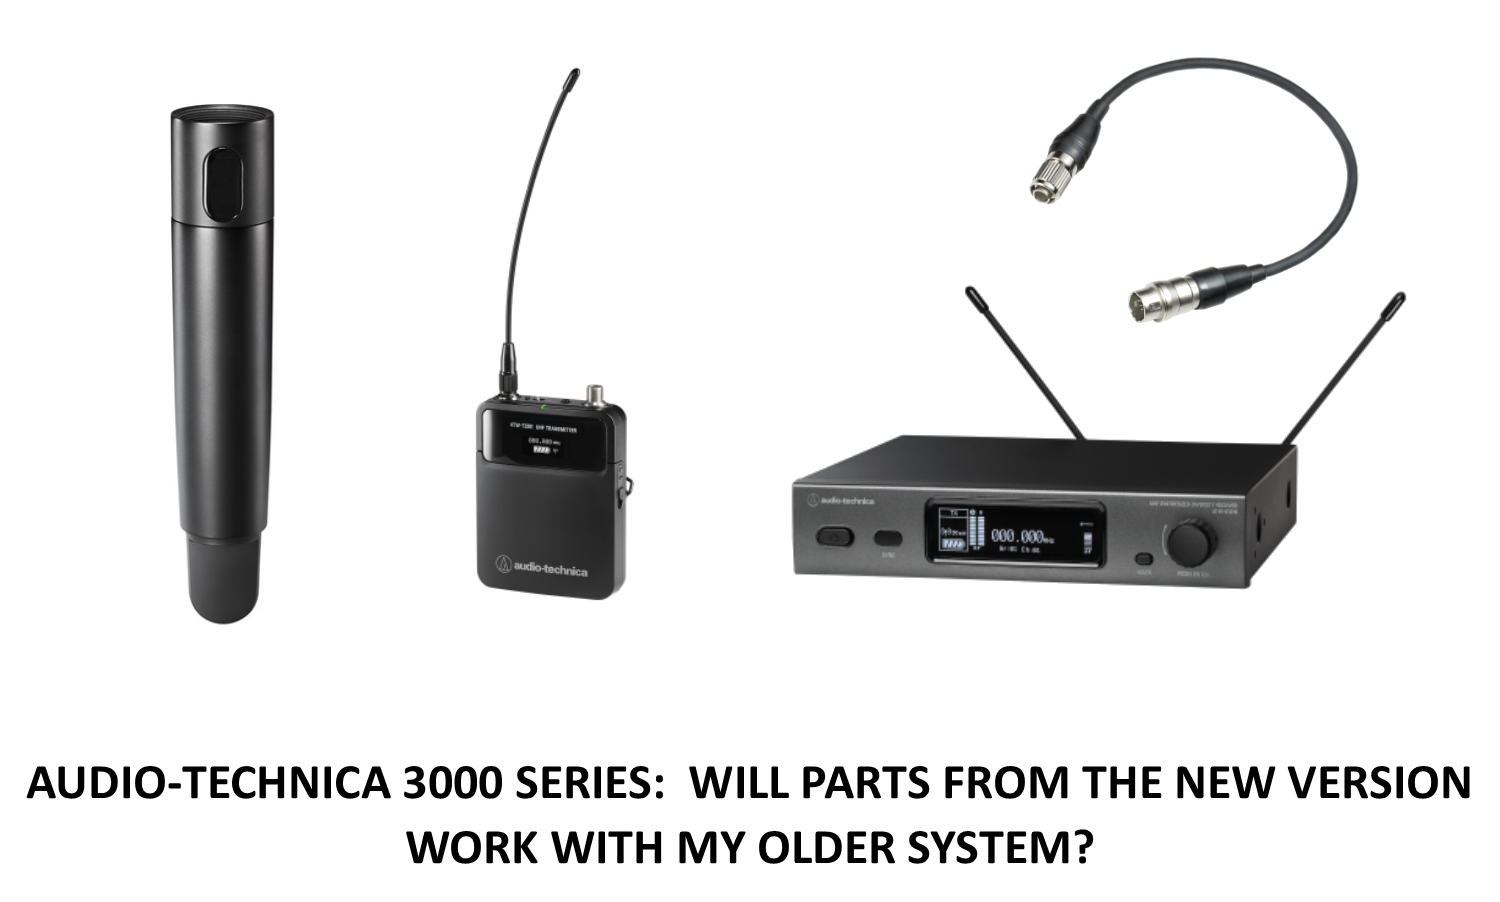 Audio-Technica 3000 Series:  will parts from the new version work with my older system?